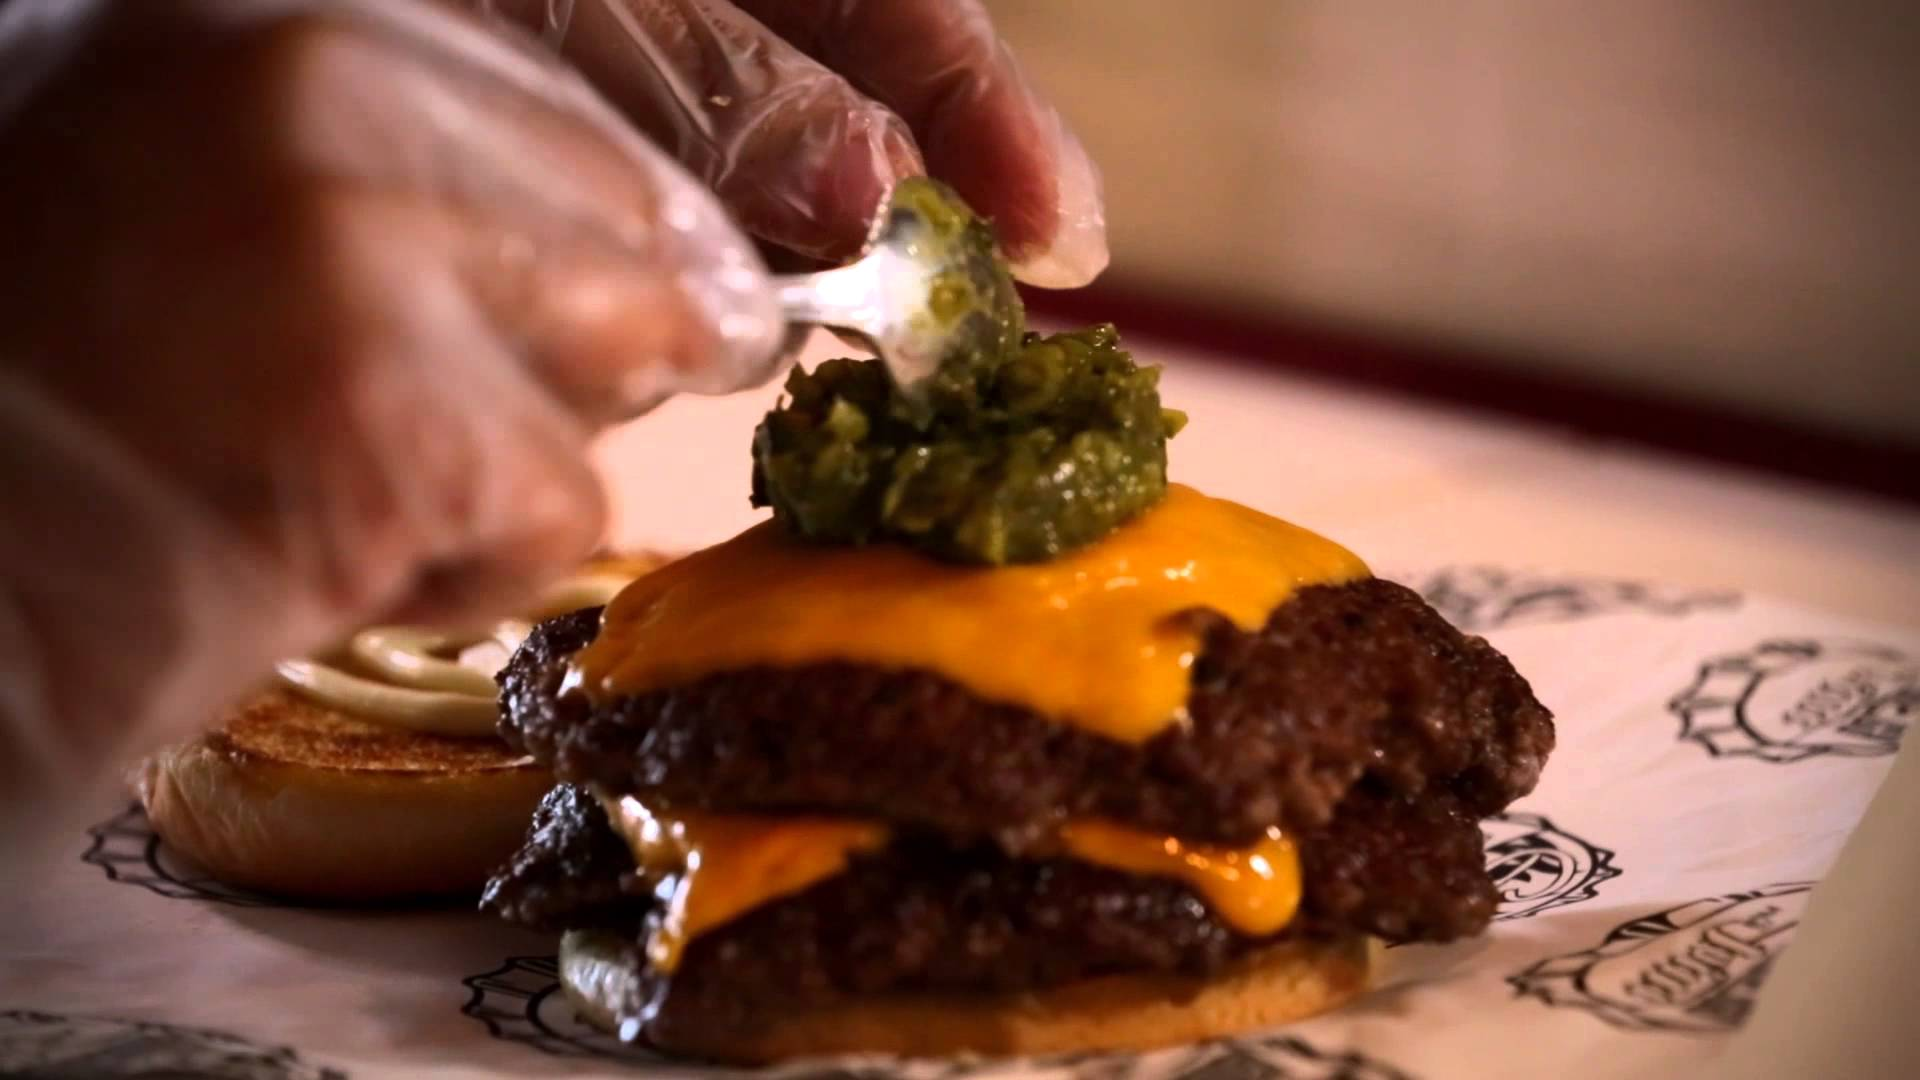 Jacques Pepin More Fast Food